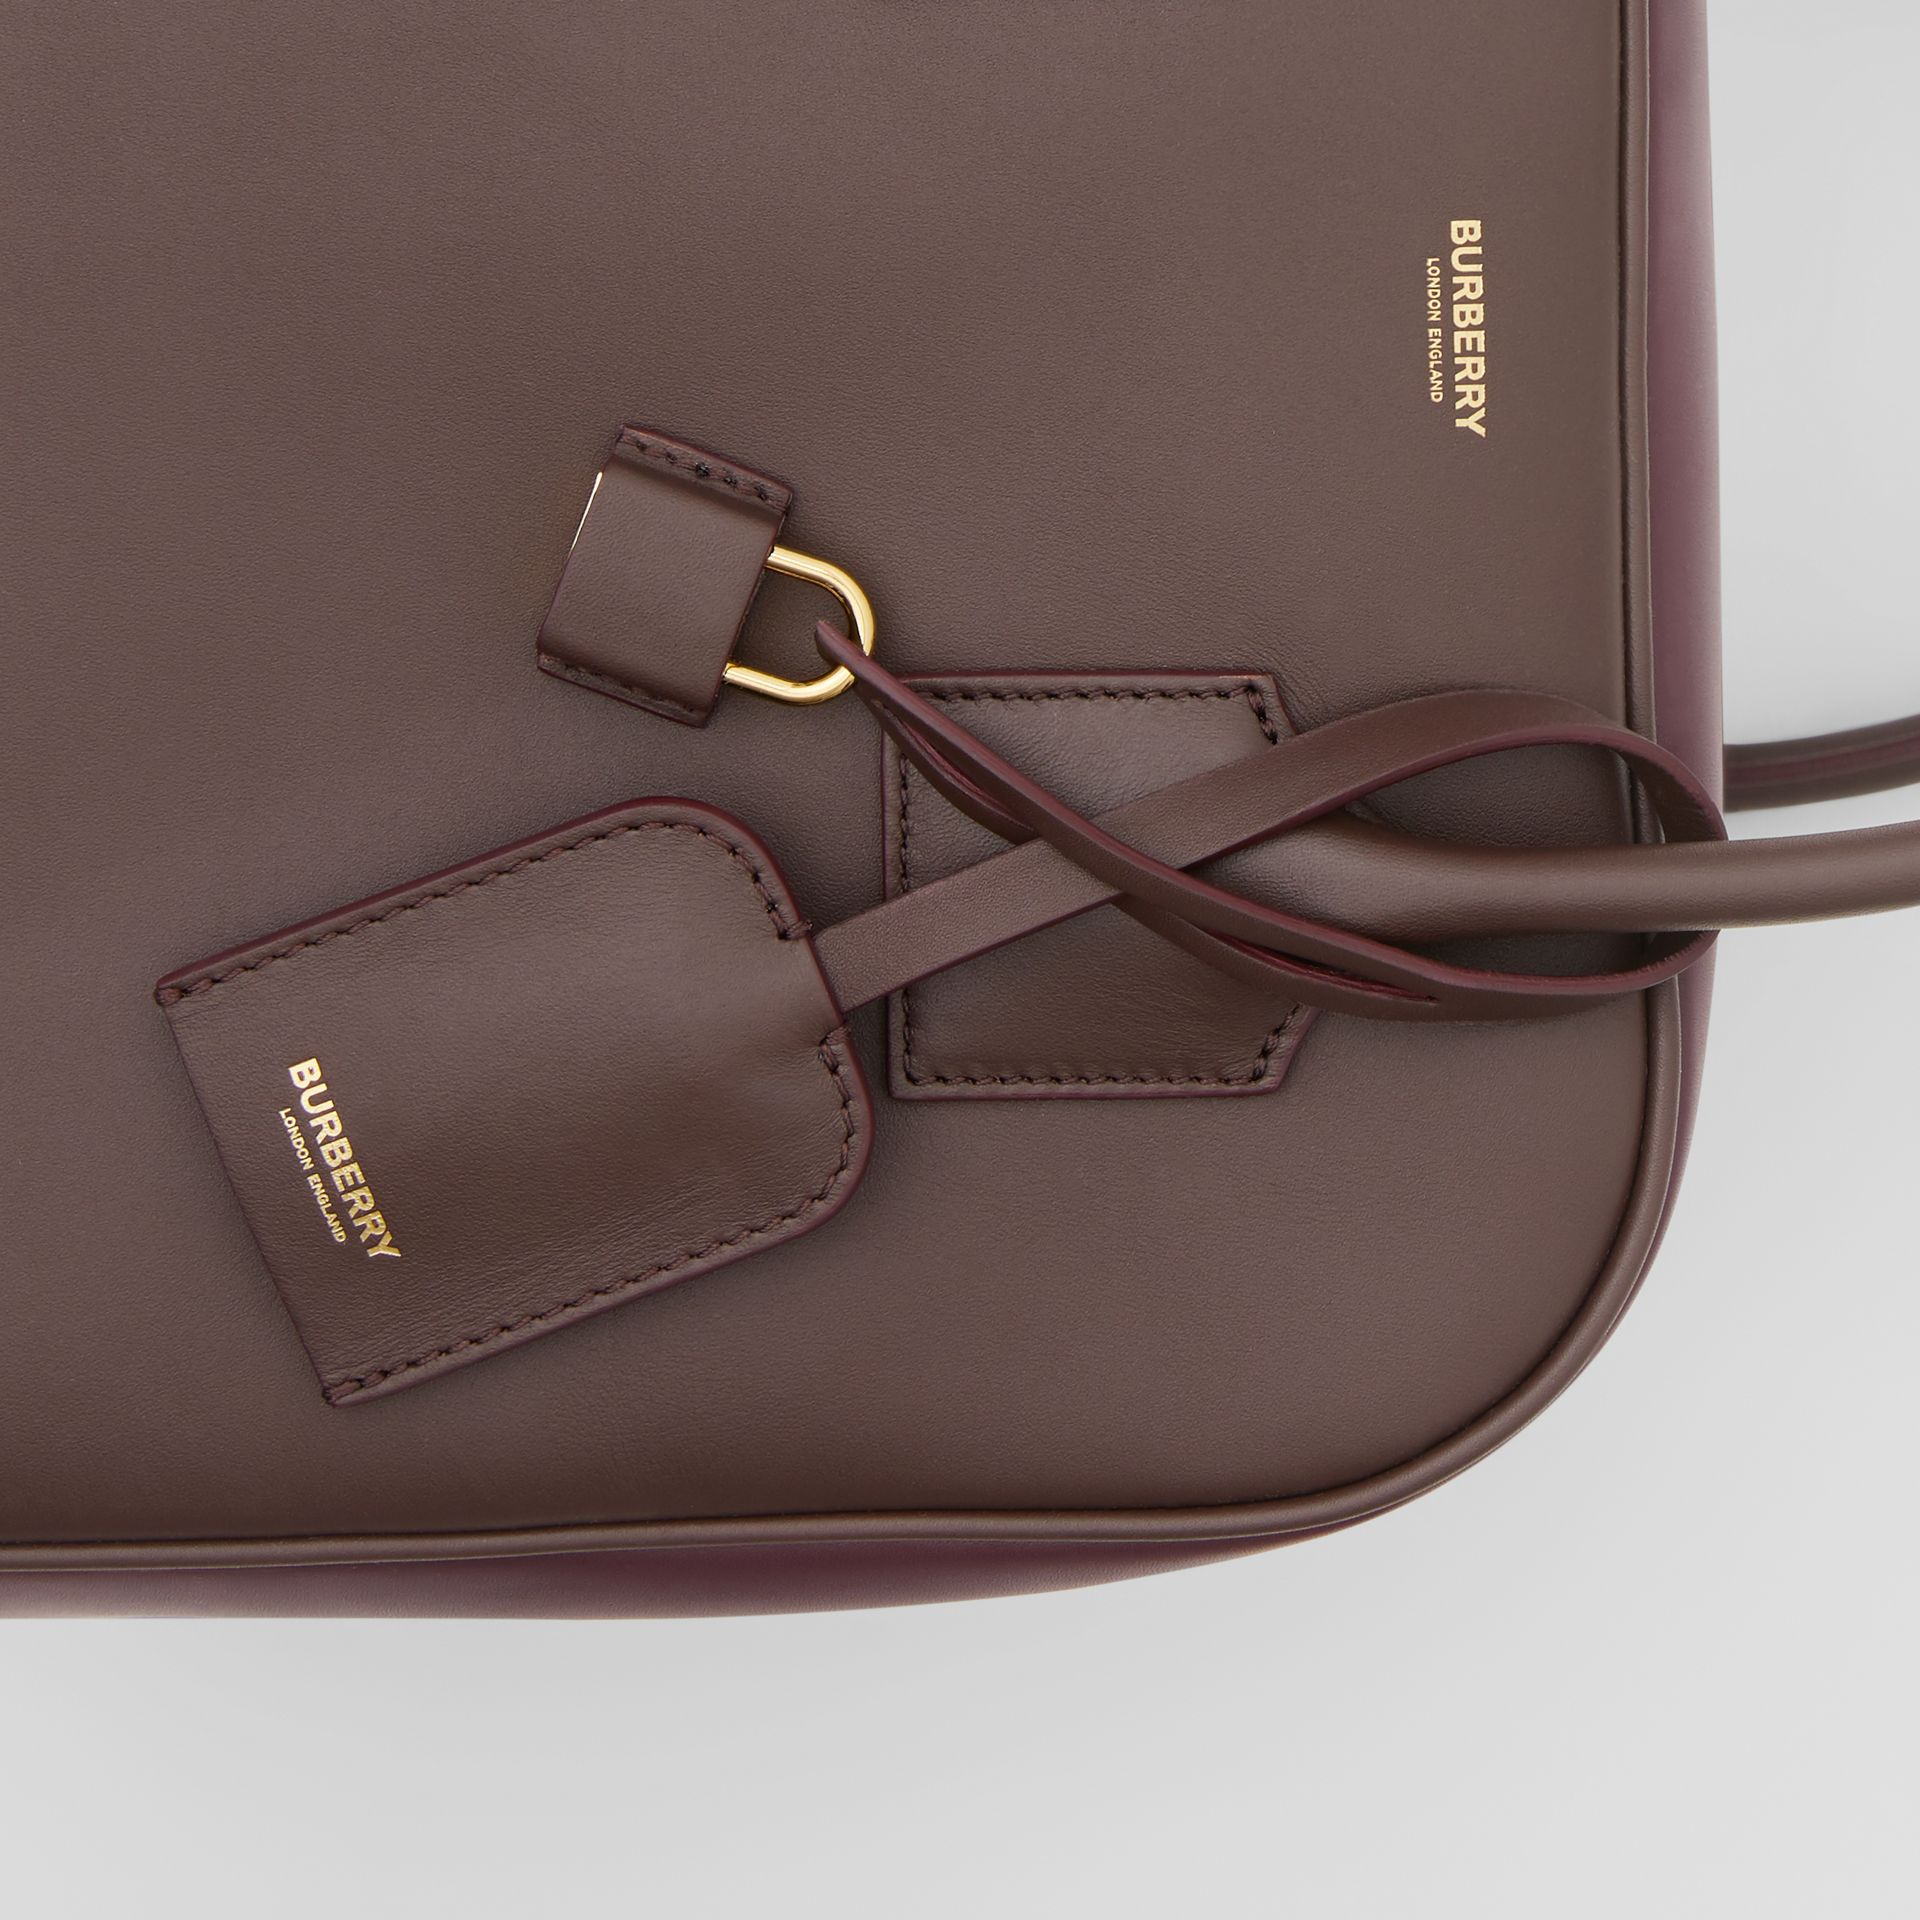 Medium Leather and Suede Cube Bag in Mahogany - Women | Burberry United States - gallery image 8